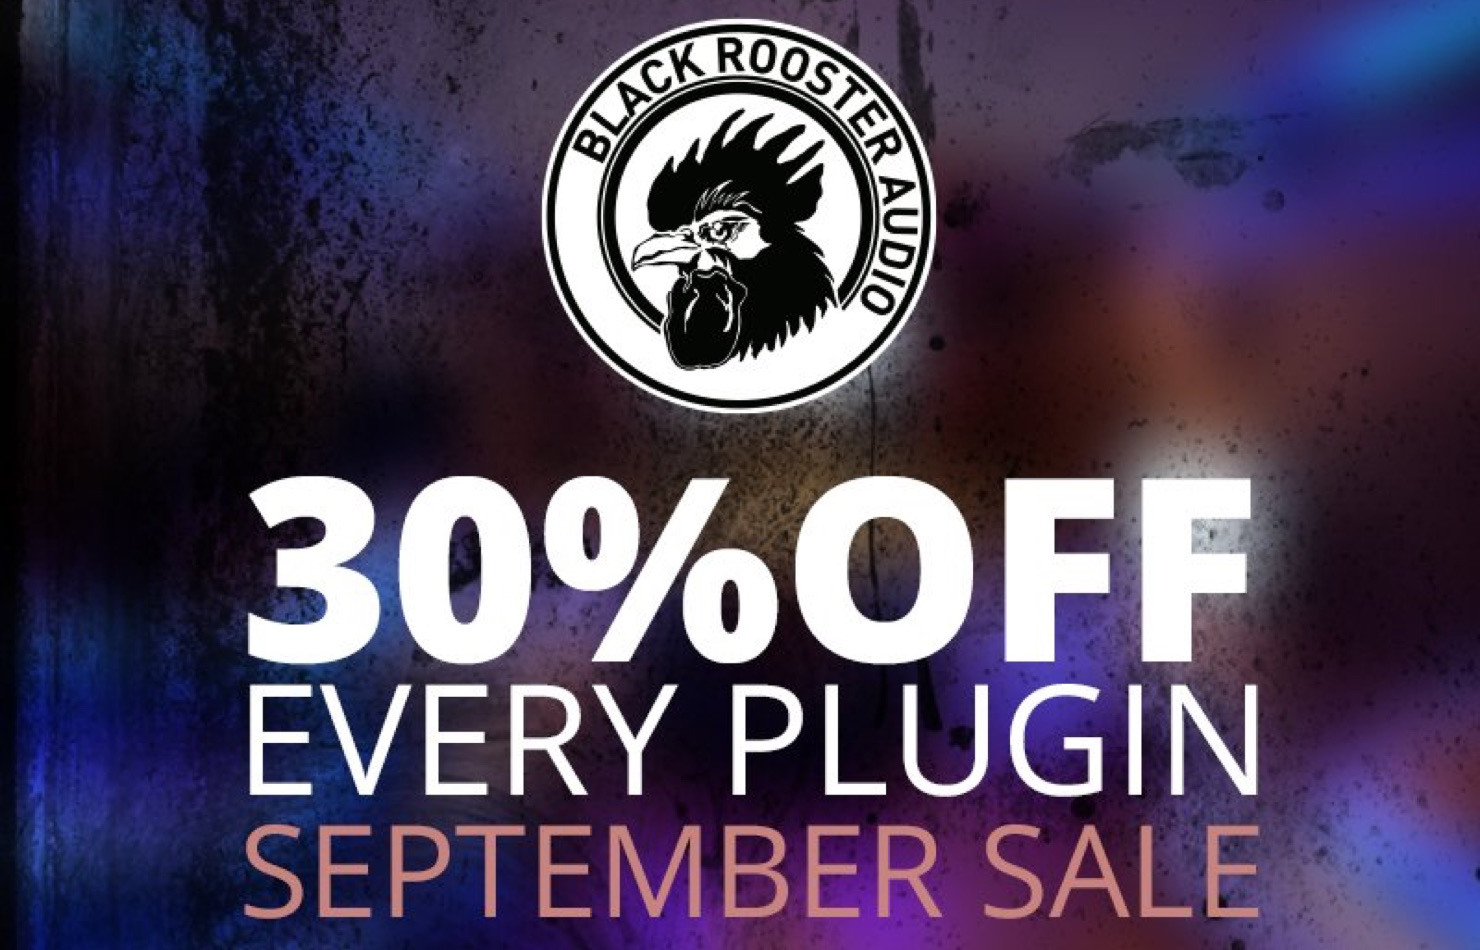 Black Rooster Audio 全プラグイン30%Offセール